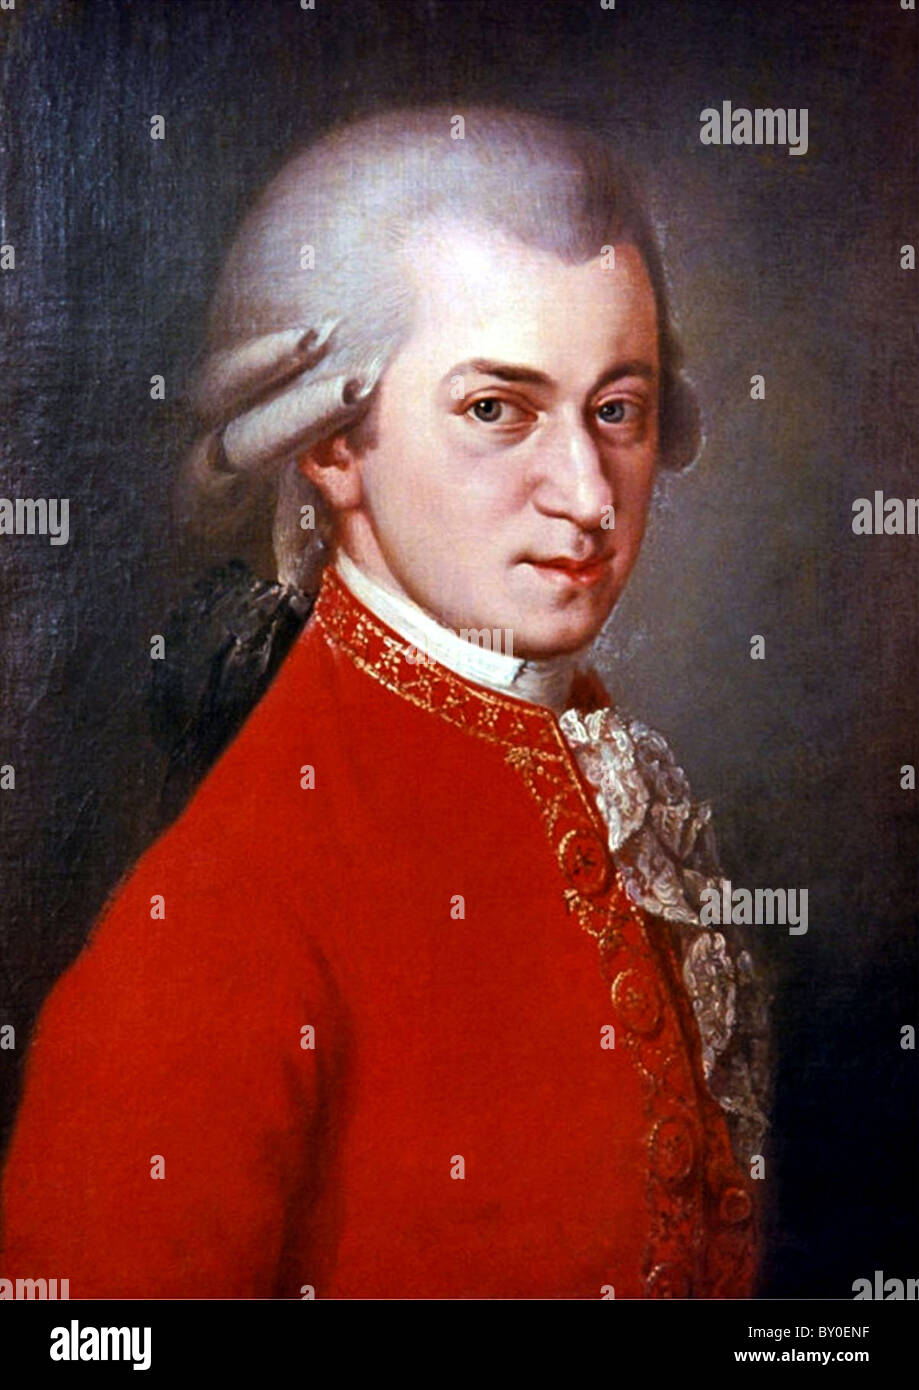 Mozart, compositore Wolfgang Amadeus Mozart Immagini Stock